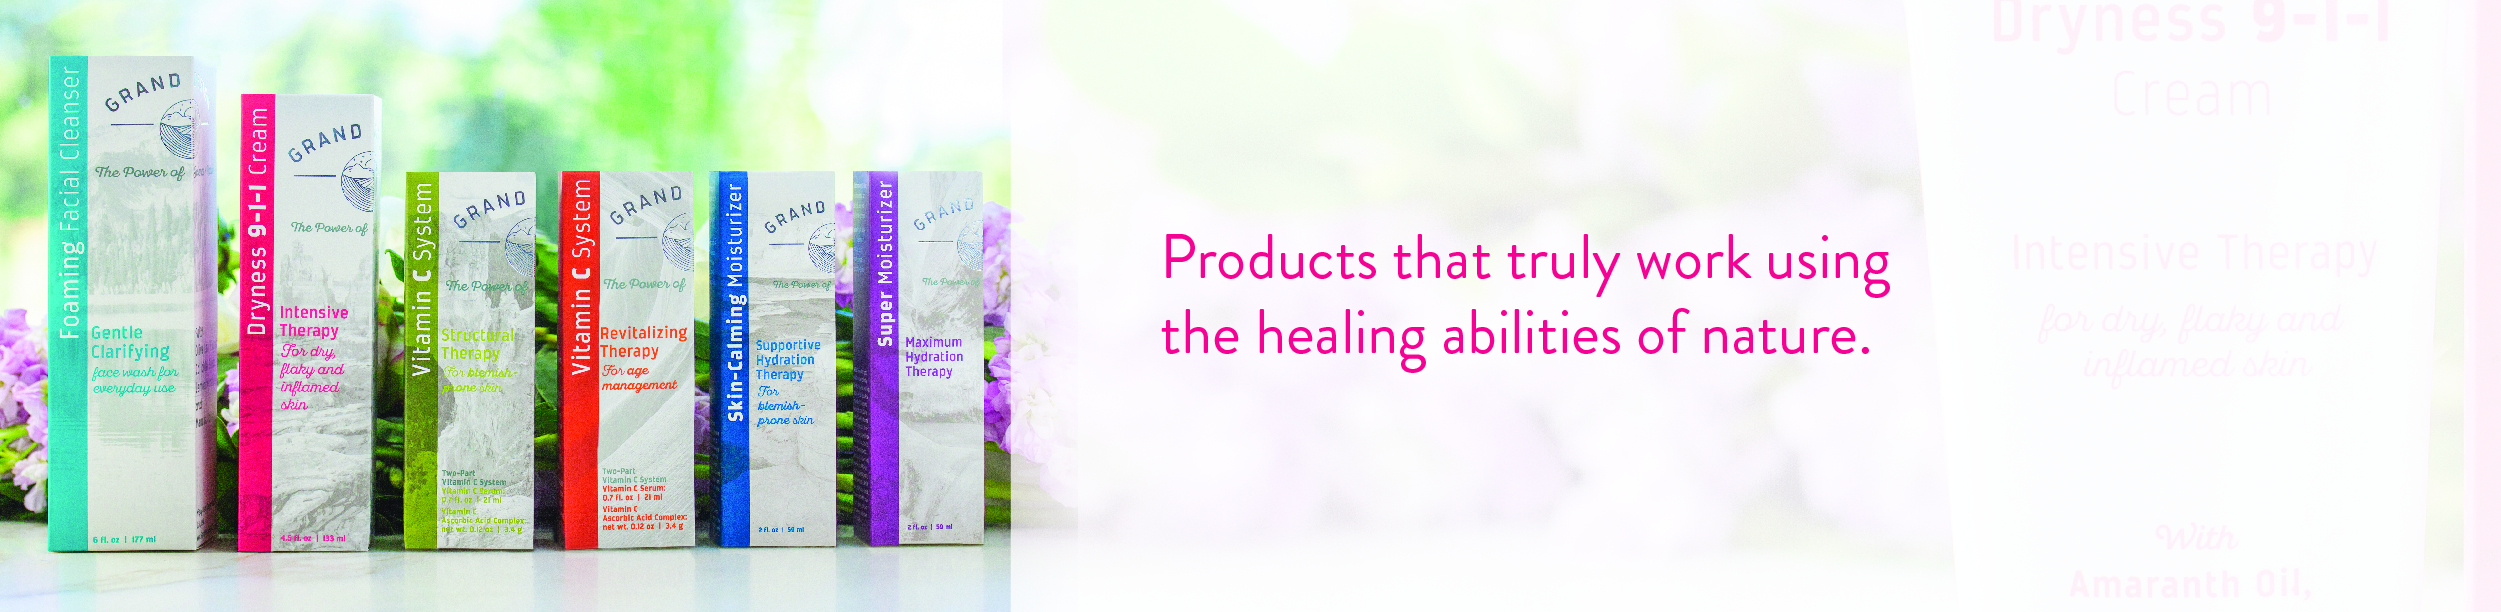 Clean, effective formulas that provide visible results.